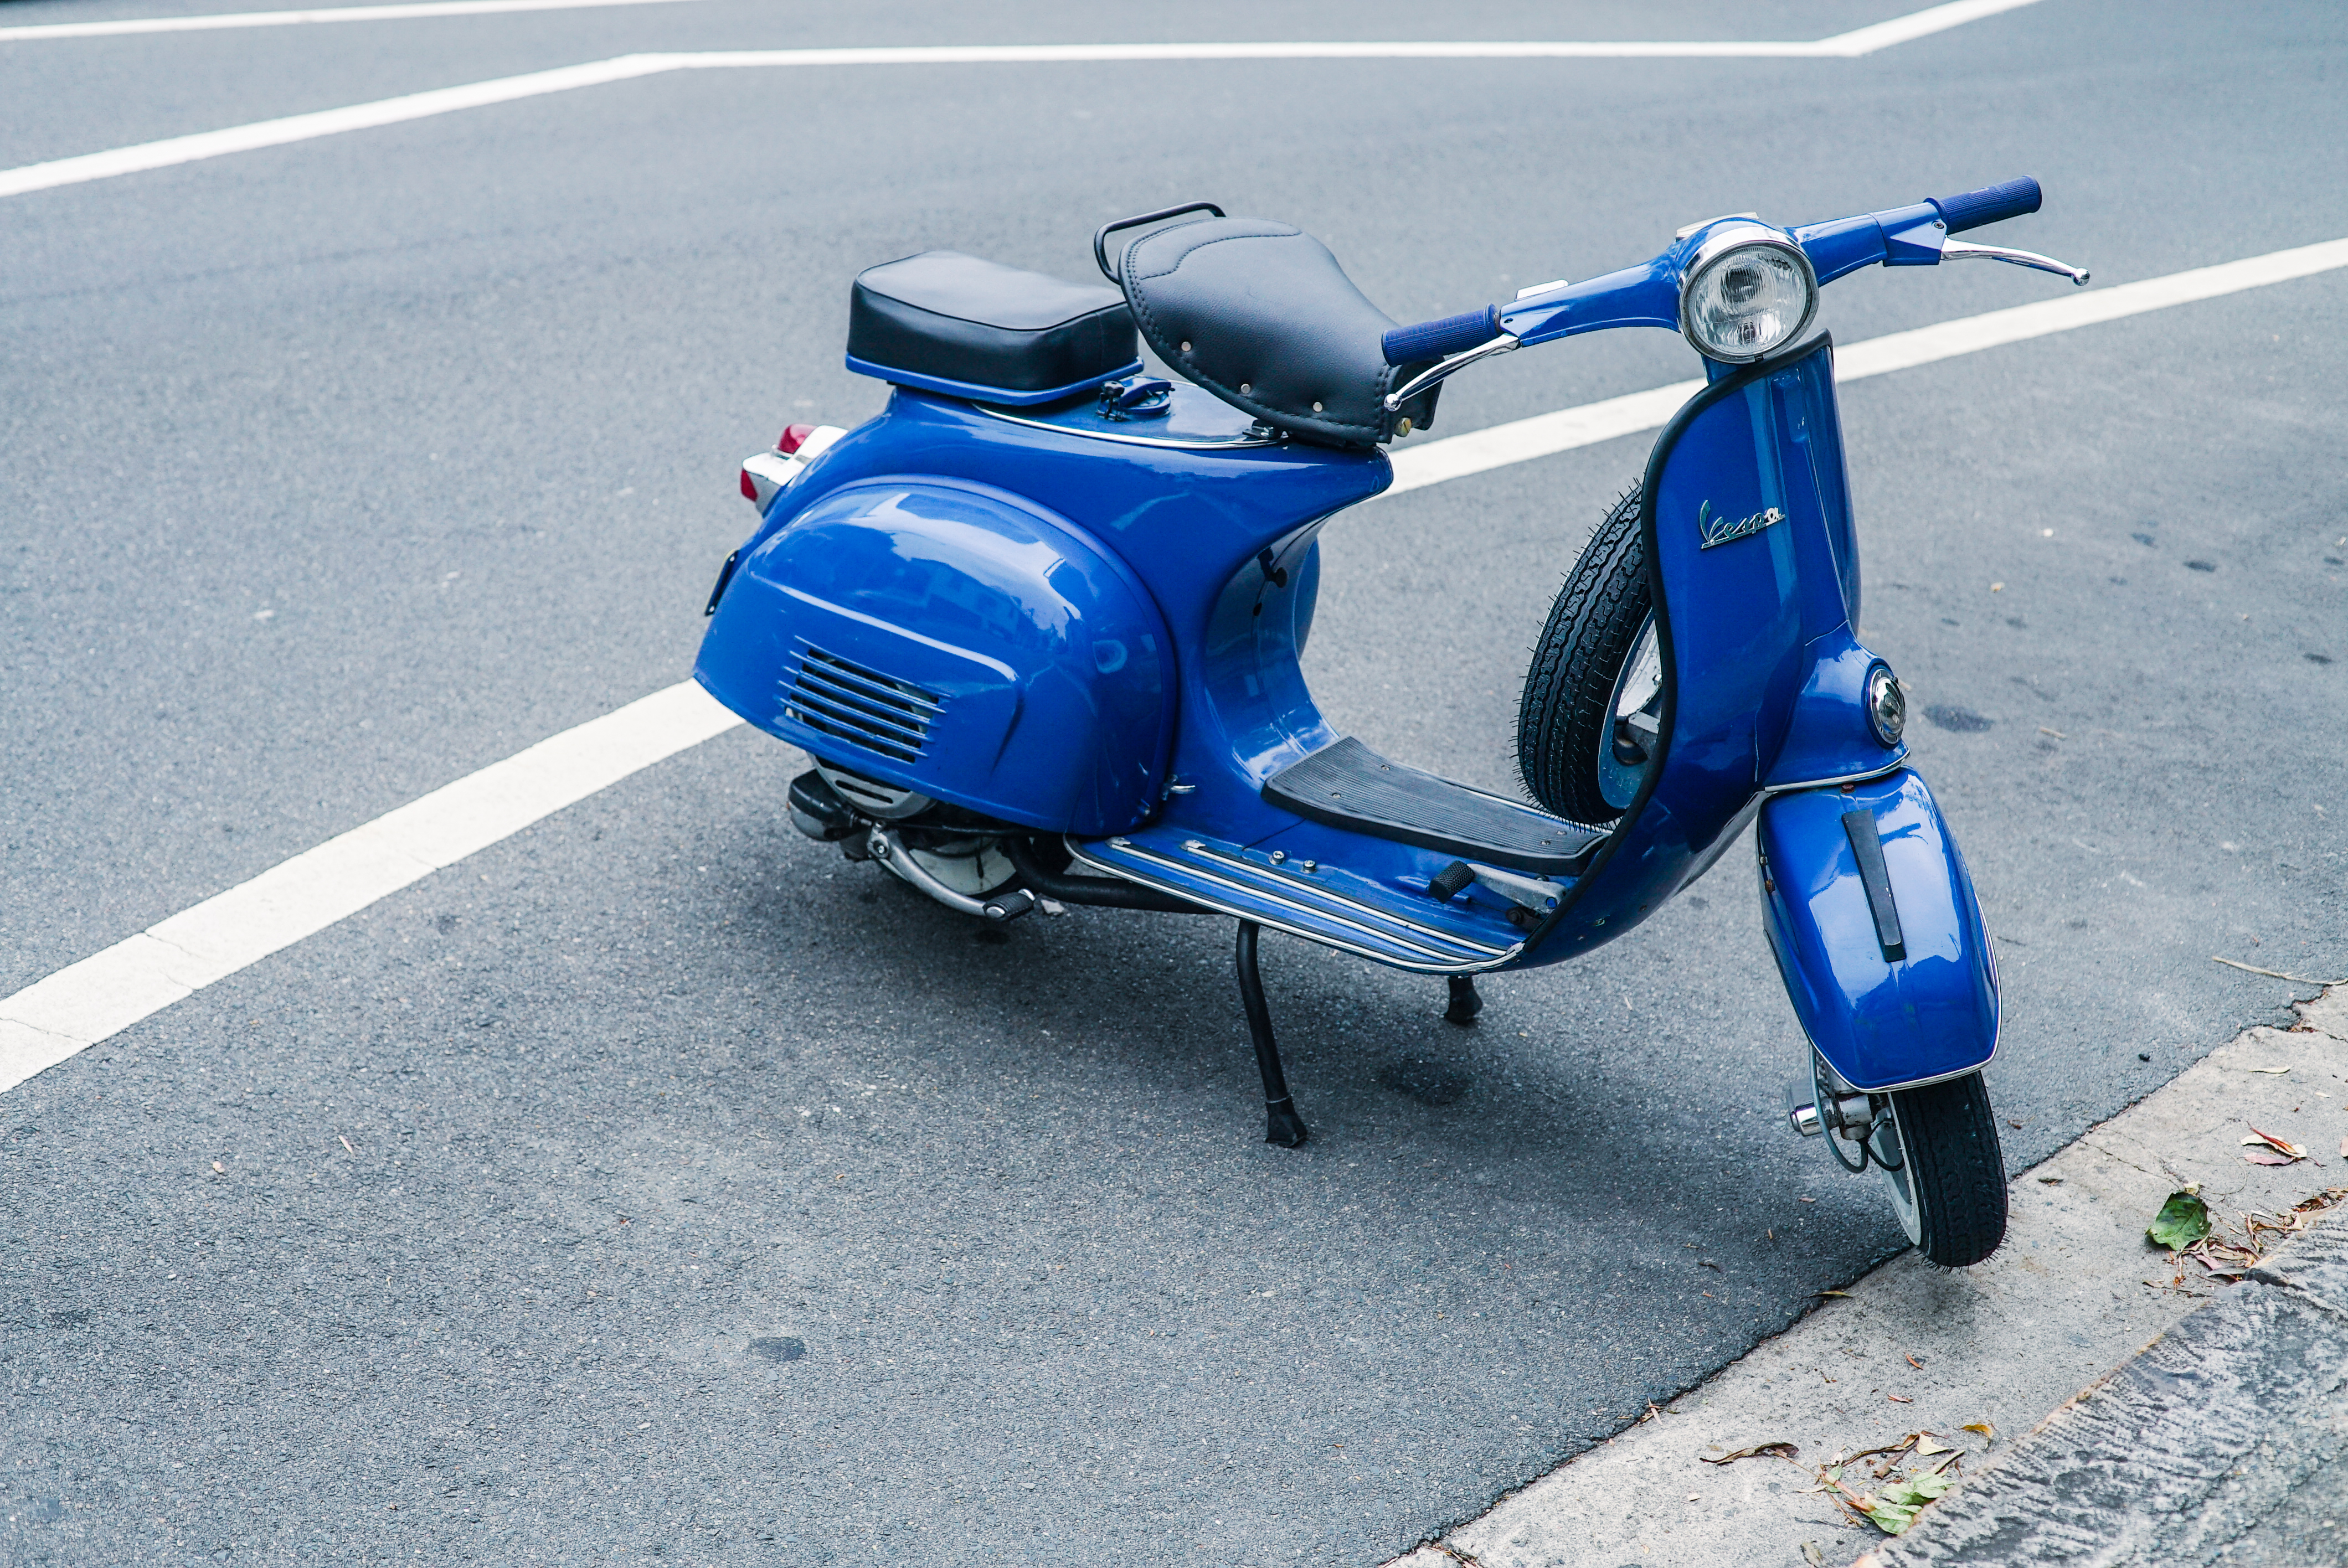 Parked Blue Motor Scooter